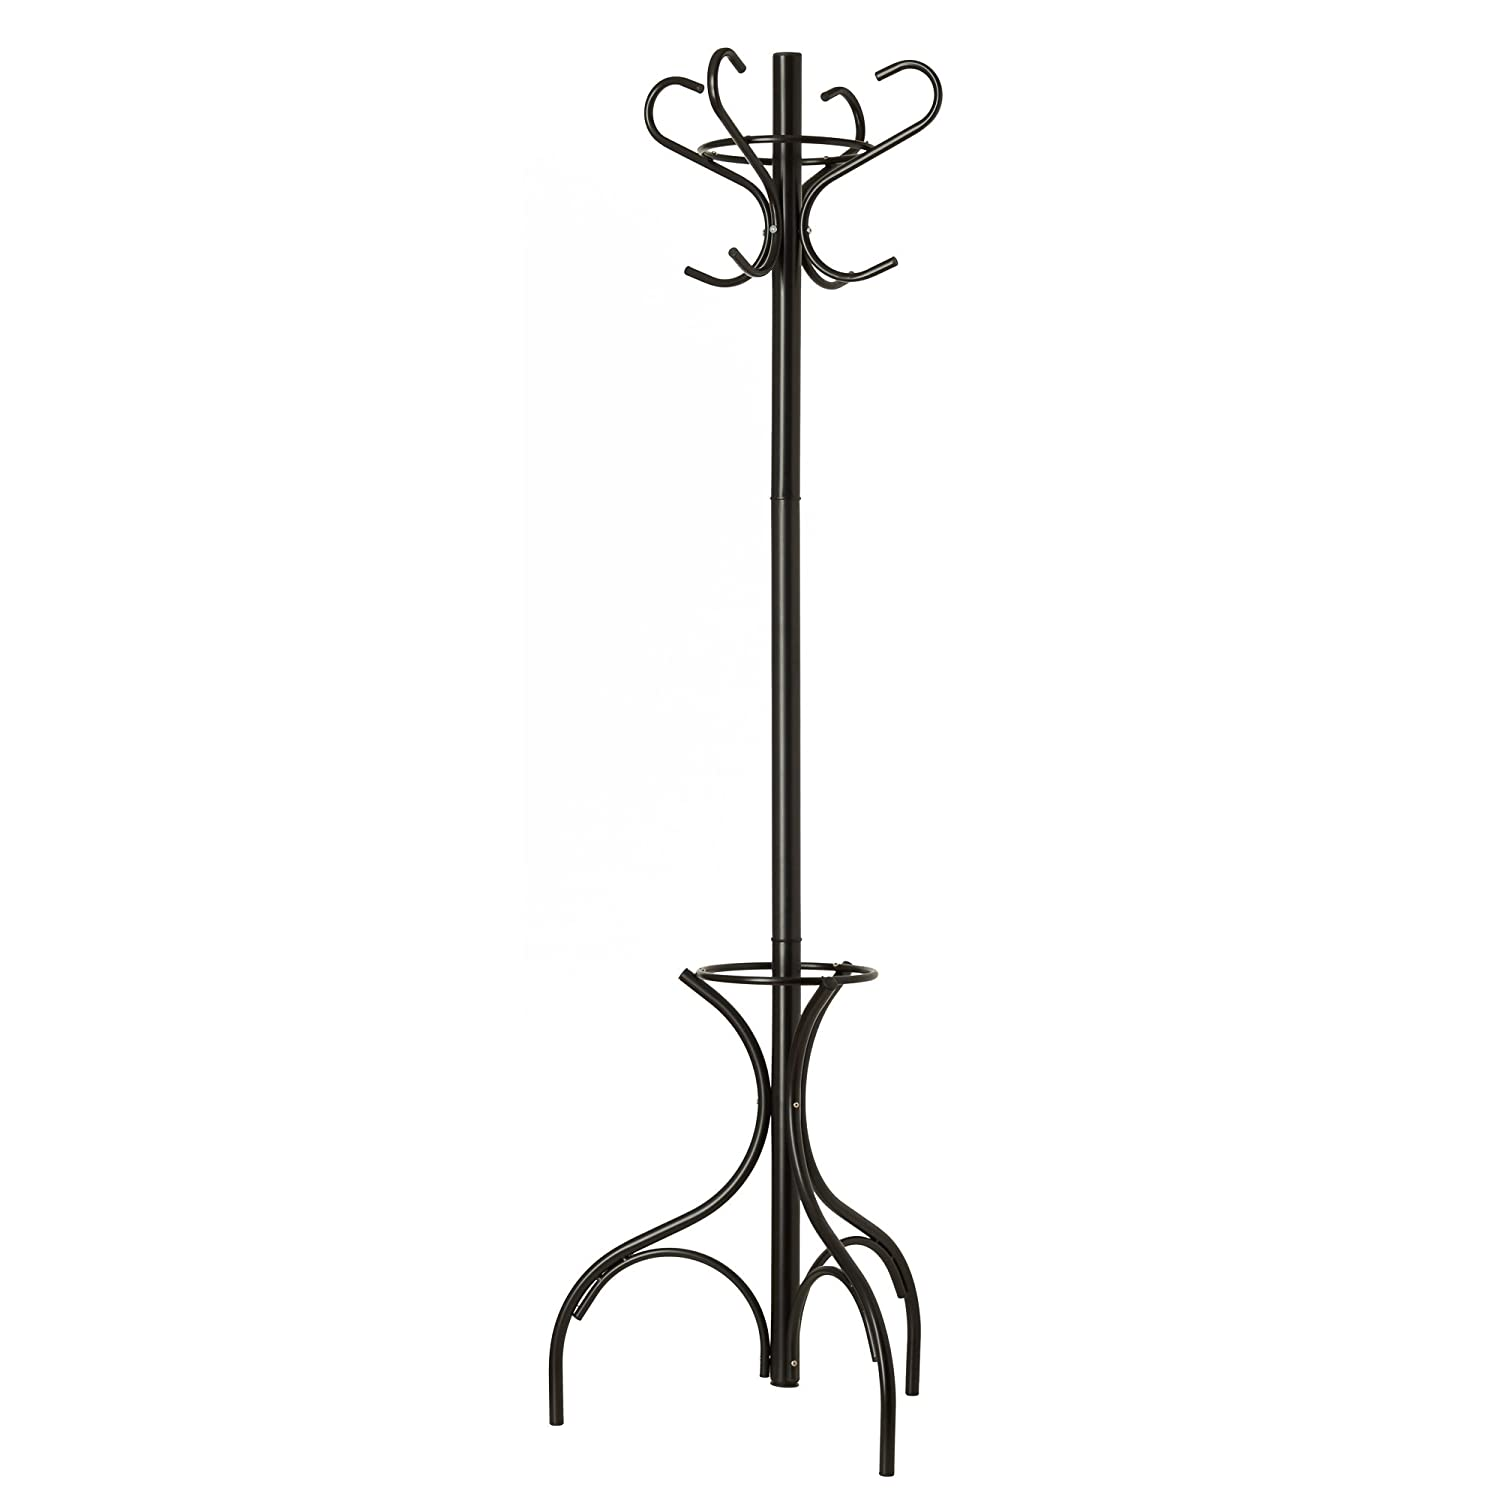 GrayBunny GB-6807 Metal Coat Rack, Hat Stand, Umbrella Holder, Hall Tree, Black, For Home or Office